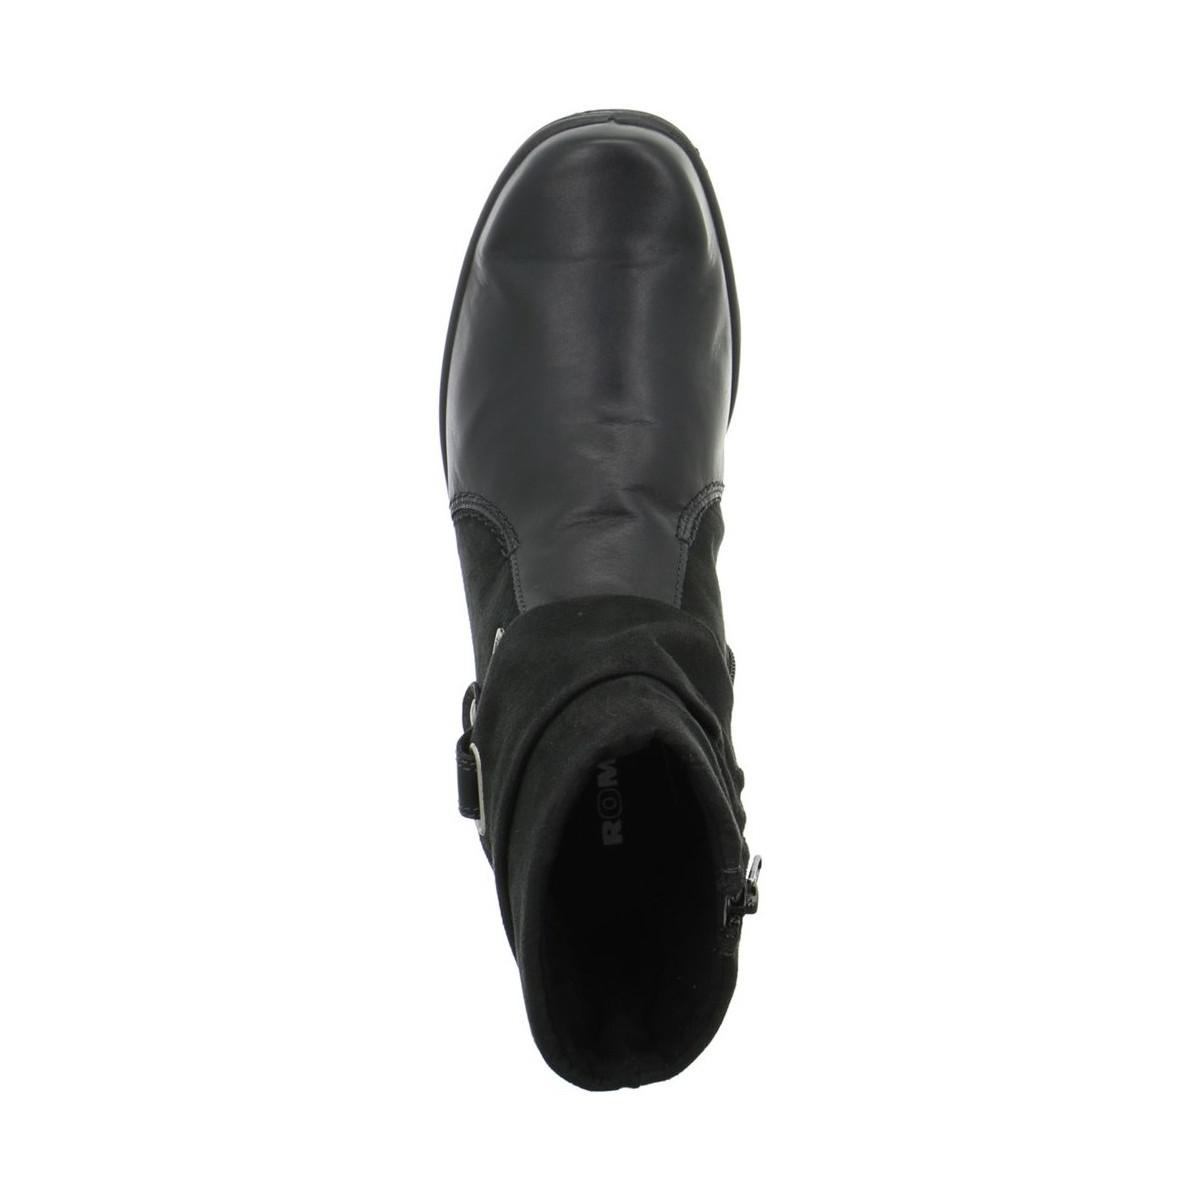 Romika Cassie 12 Women's Low Ankle Boots In Black